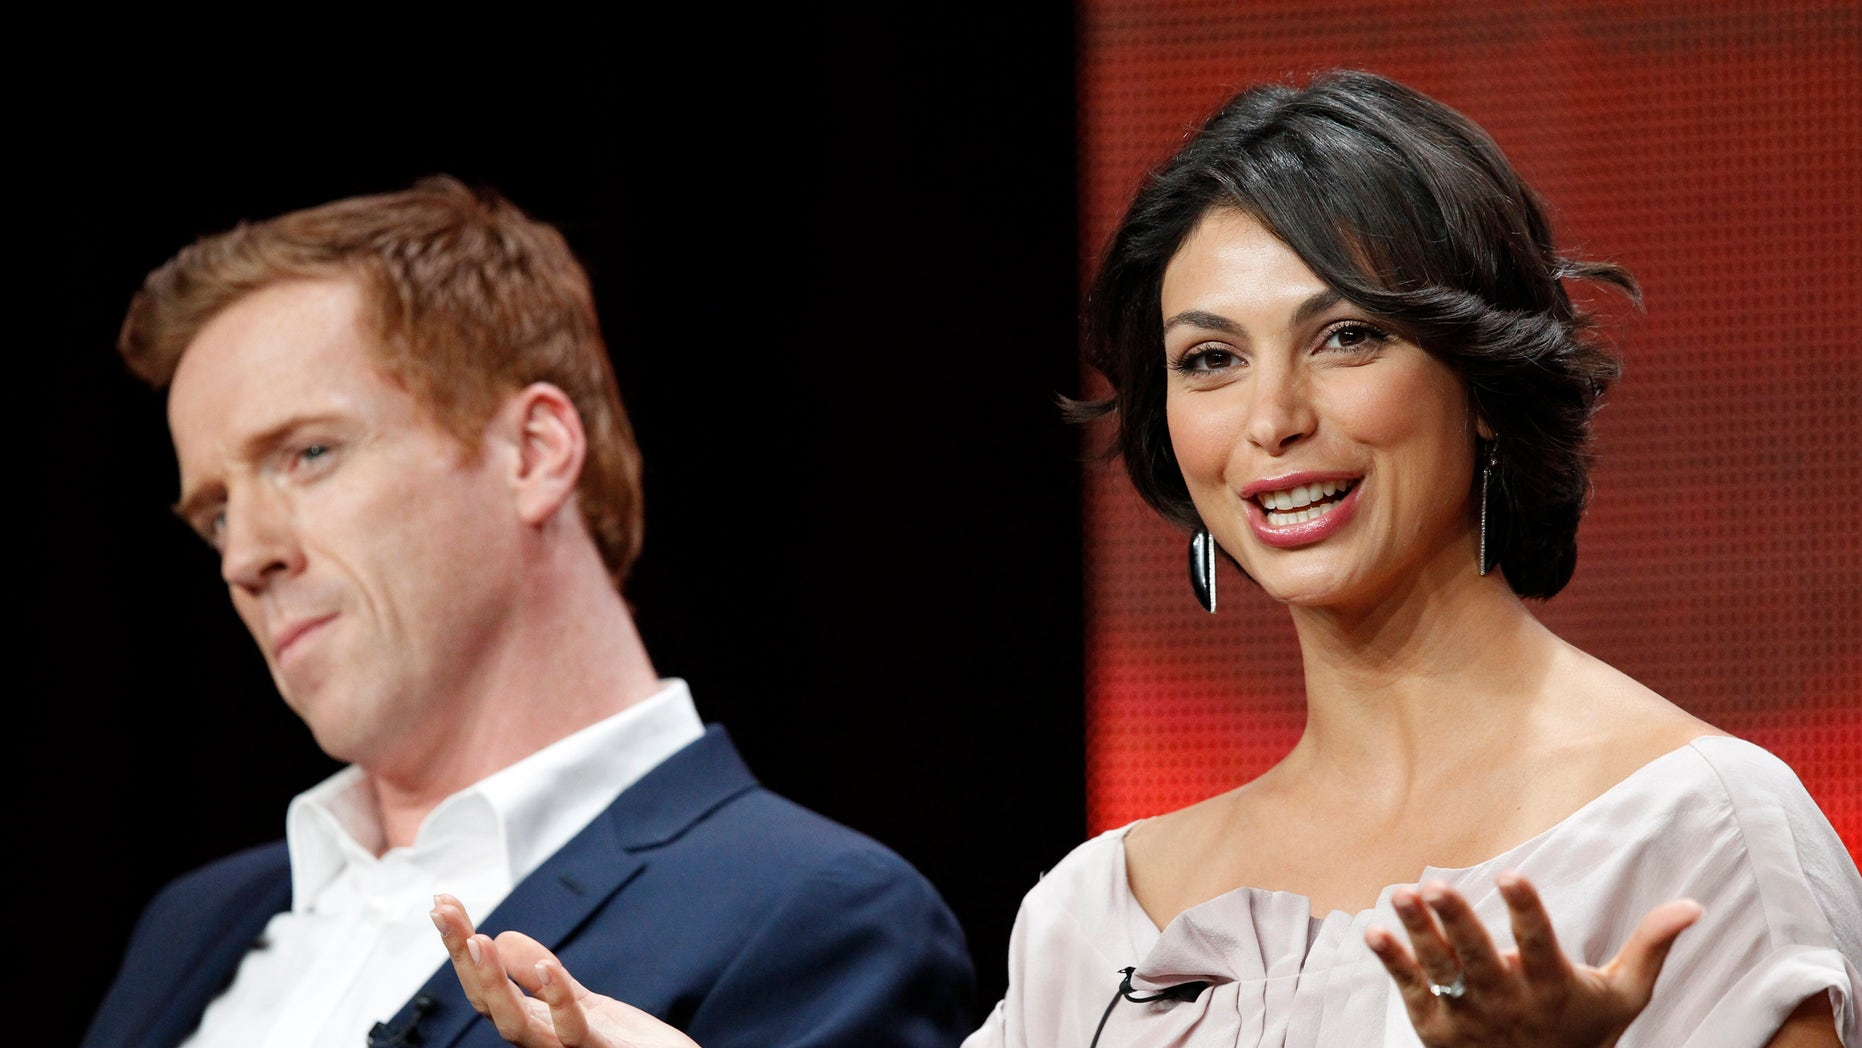 """July 30, 2012. Cast member Morena Baccarin speaks, as co-star Damian Lewis watches, at a panel for """"Homeland"""" during the Showtime television portion of the Television Critics Association Summer press tour in Beverly Hills, California."""